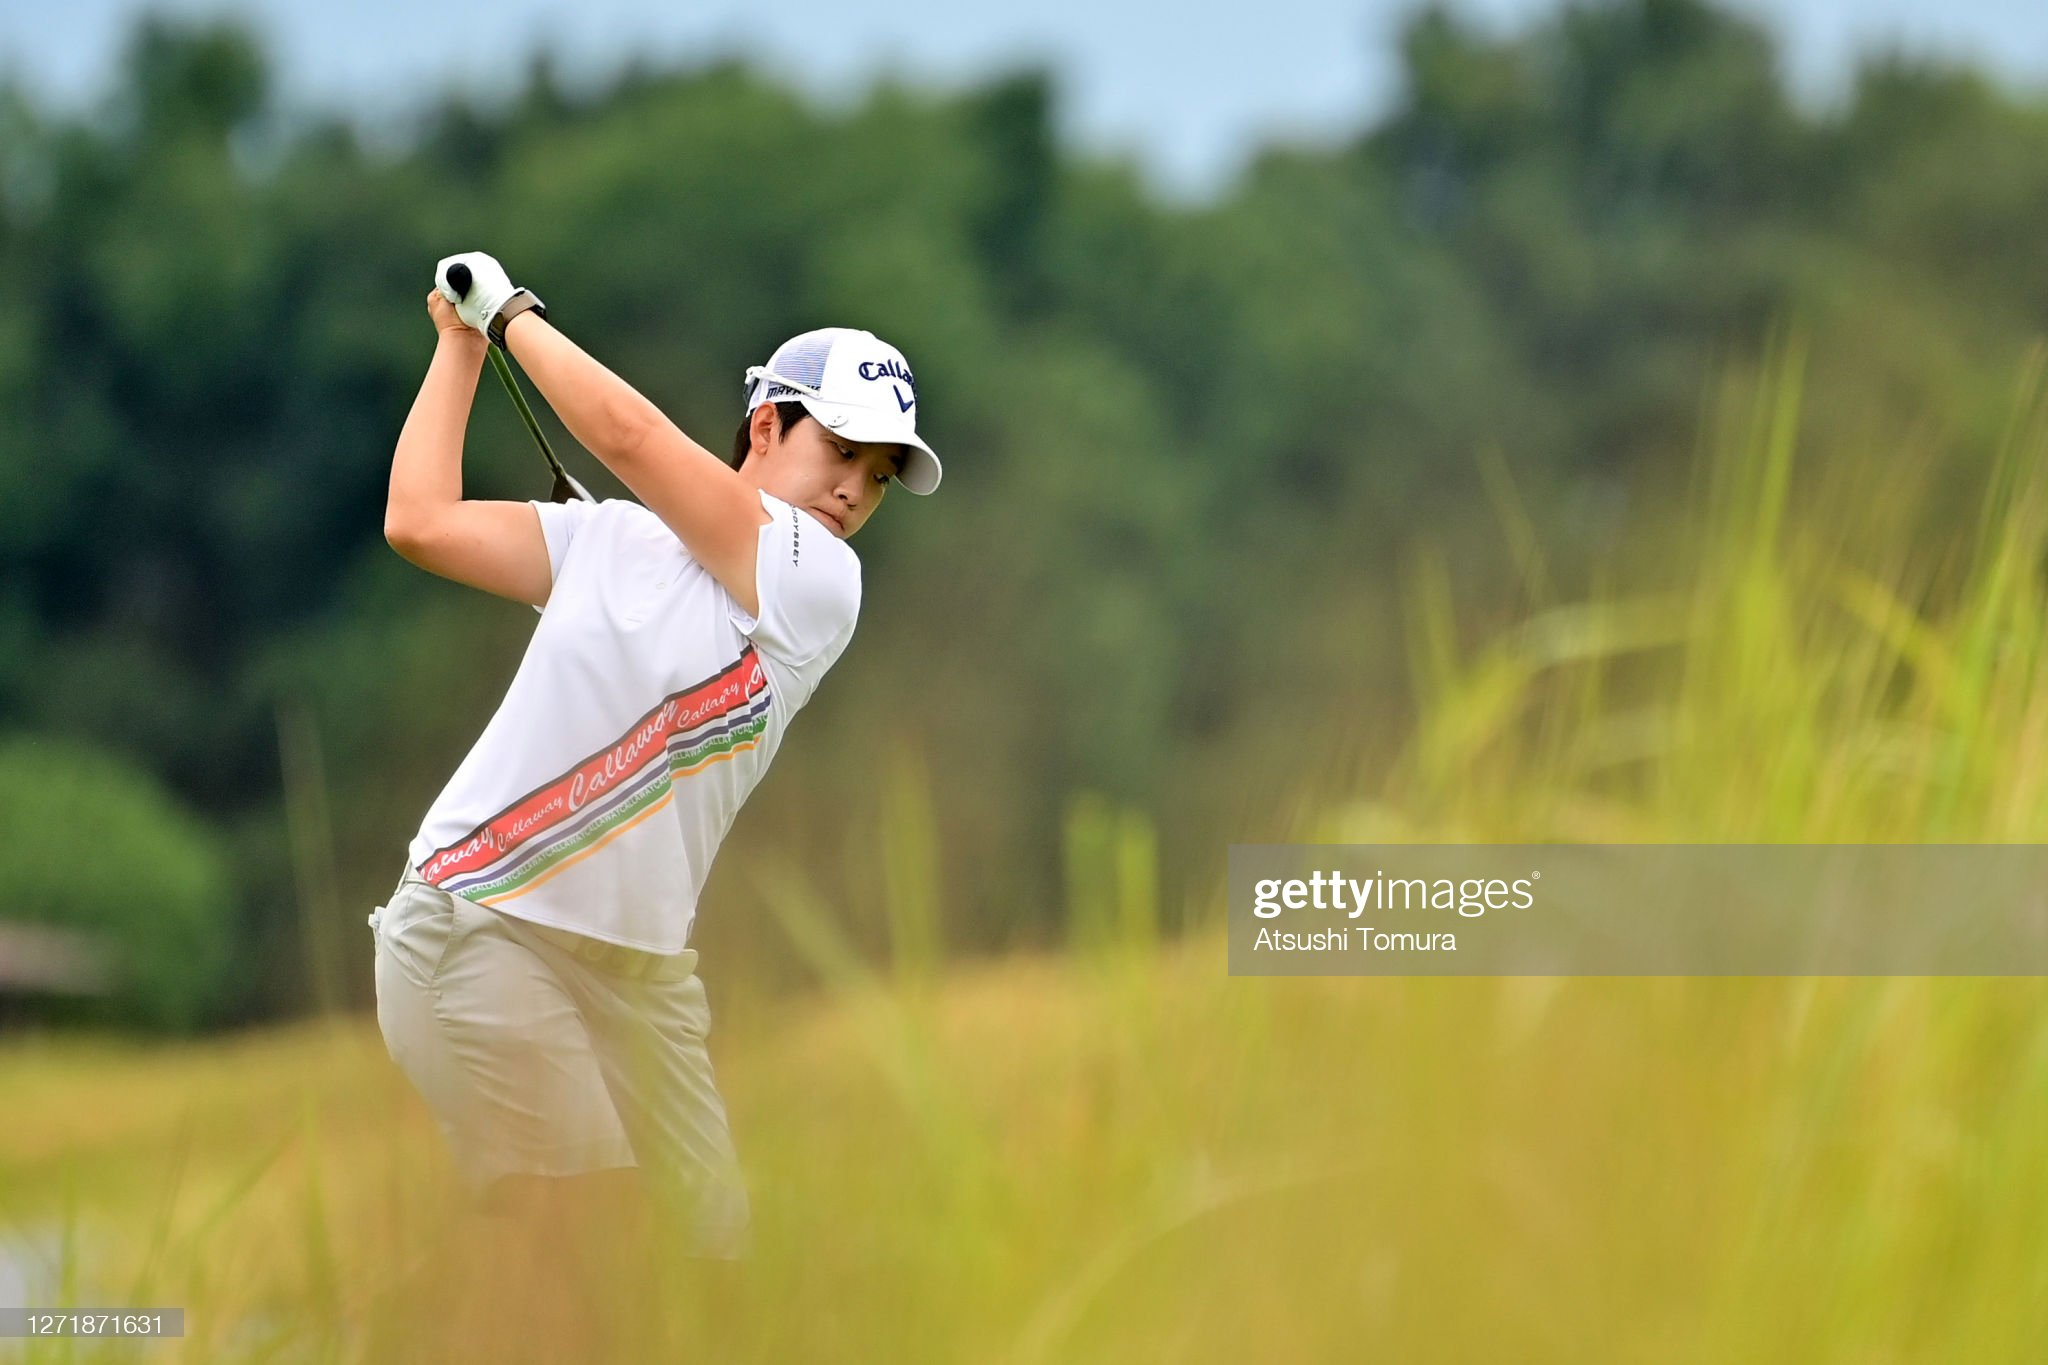 https://media.gettyimages.com/photos/heekyung-bae-of-south-korea-hits-her-tee-shot-on-the-5th-hole-during-picture-id1271871631?s=2048x2048